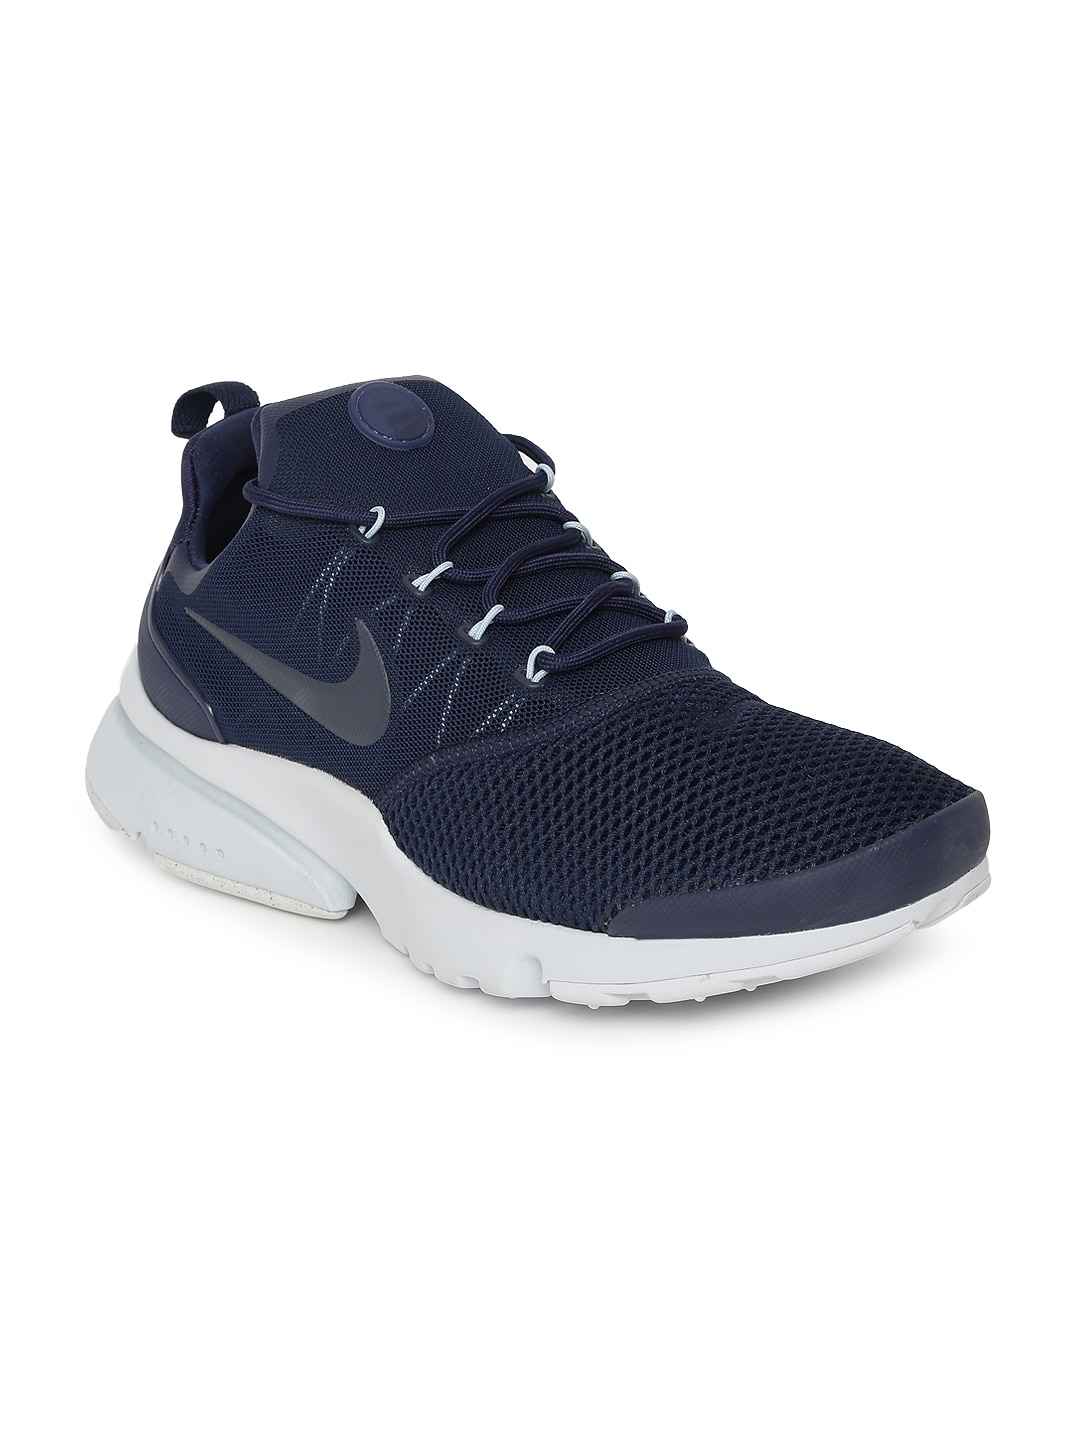 919f6bfba823 Nike Presto - Buy Nike Presto online in India